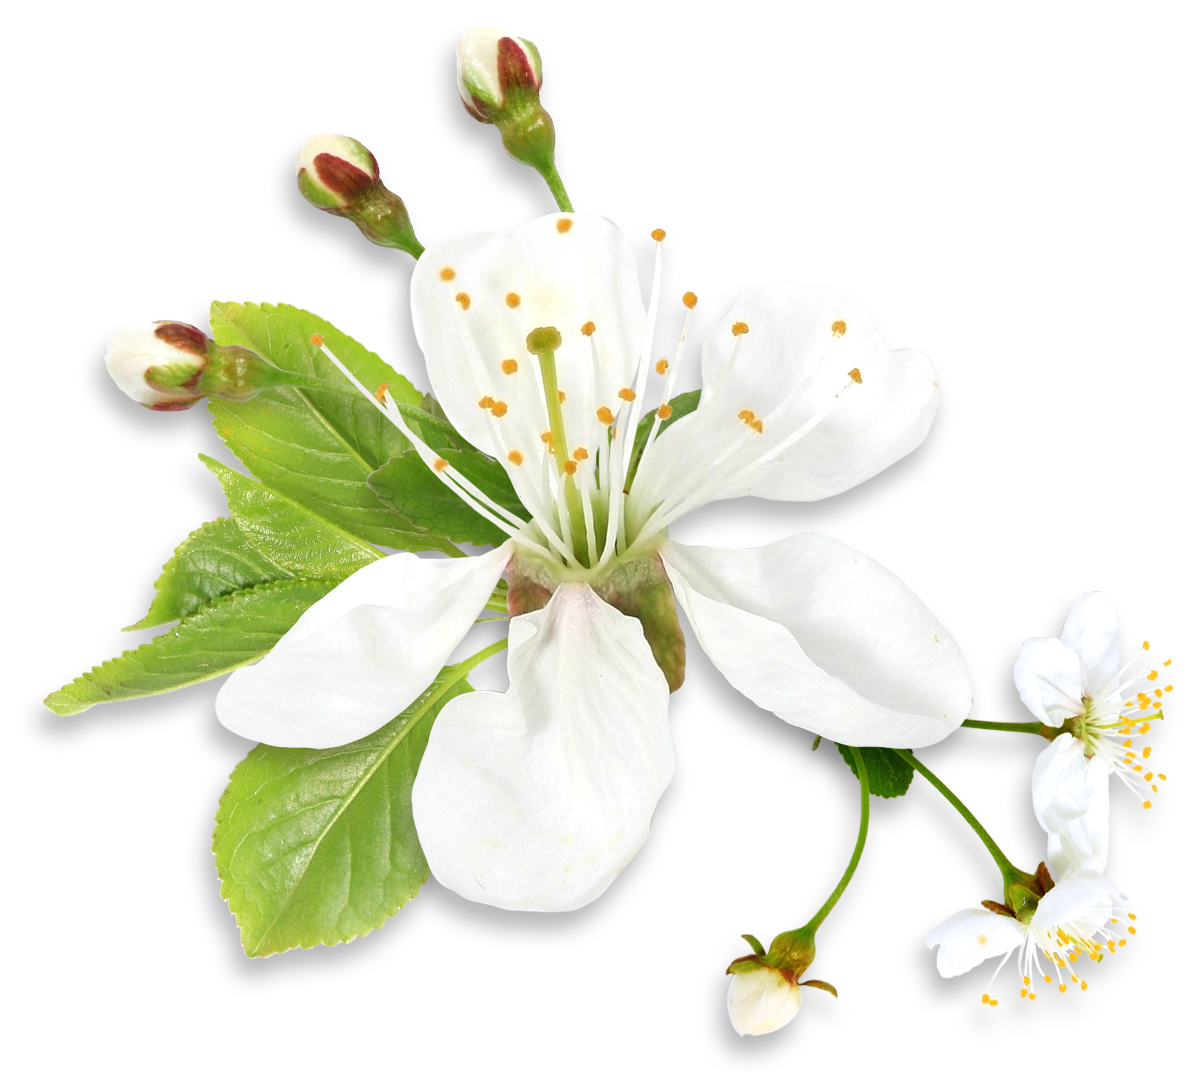 White flower clipart png image stock White Spring Tree Flower PNG Clipart image stock